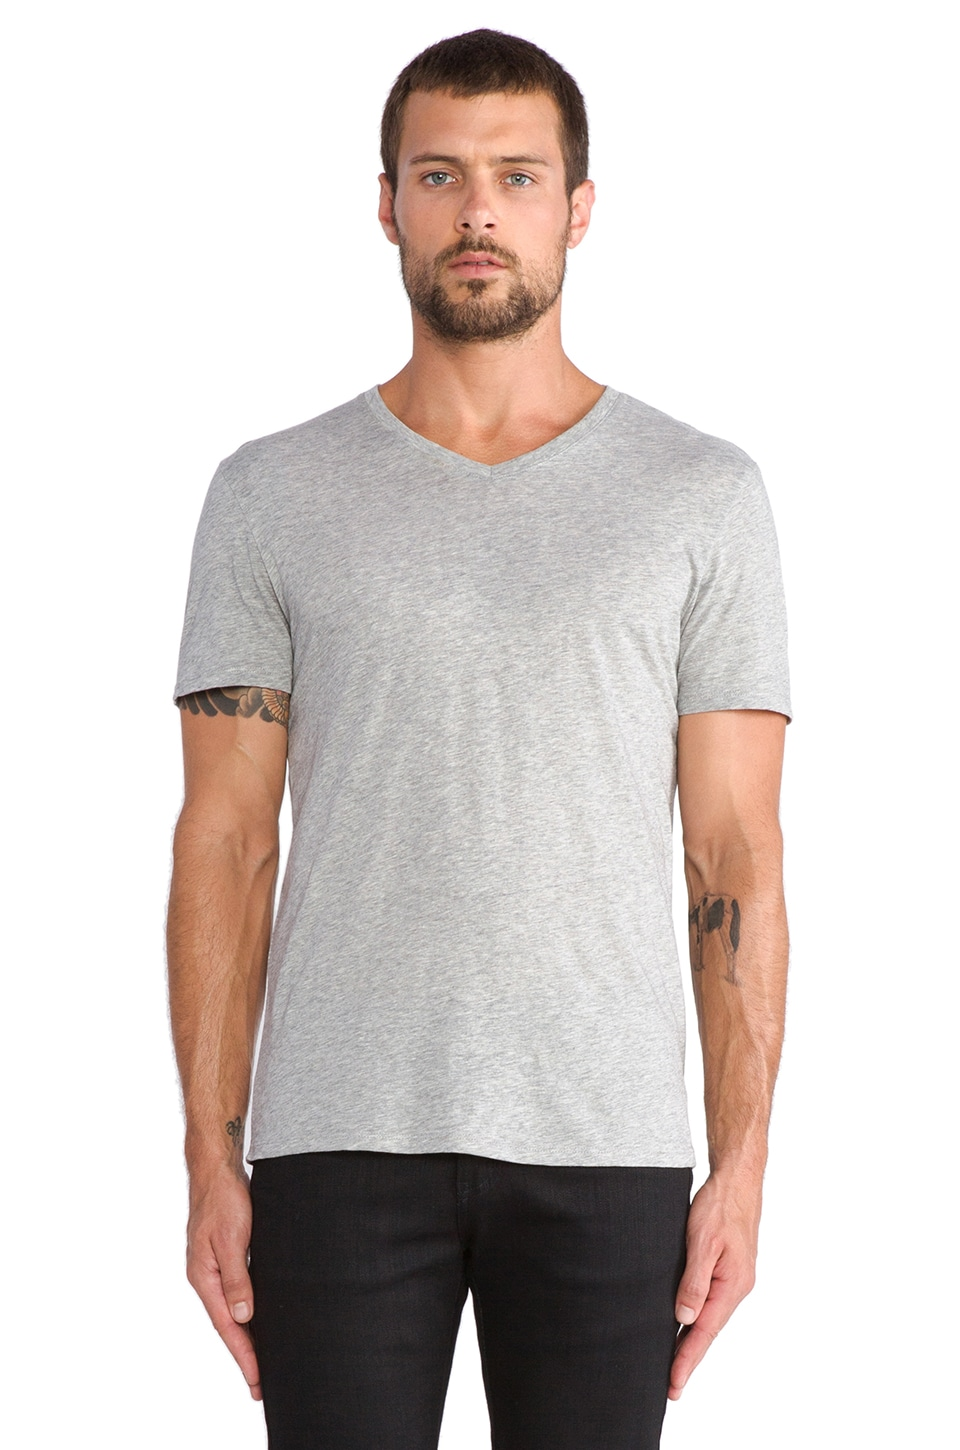 Vince Favorite Jersey V-Neck in Heather Steel